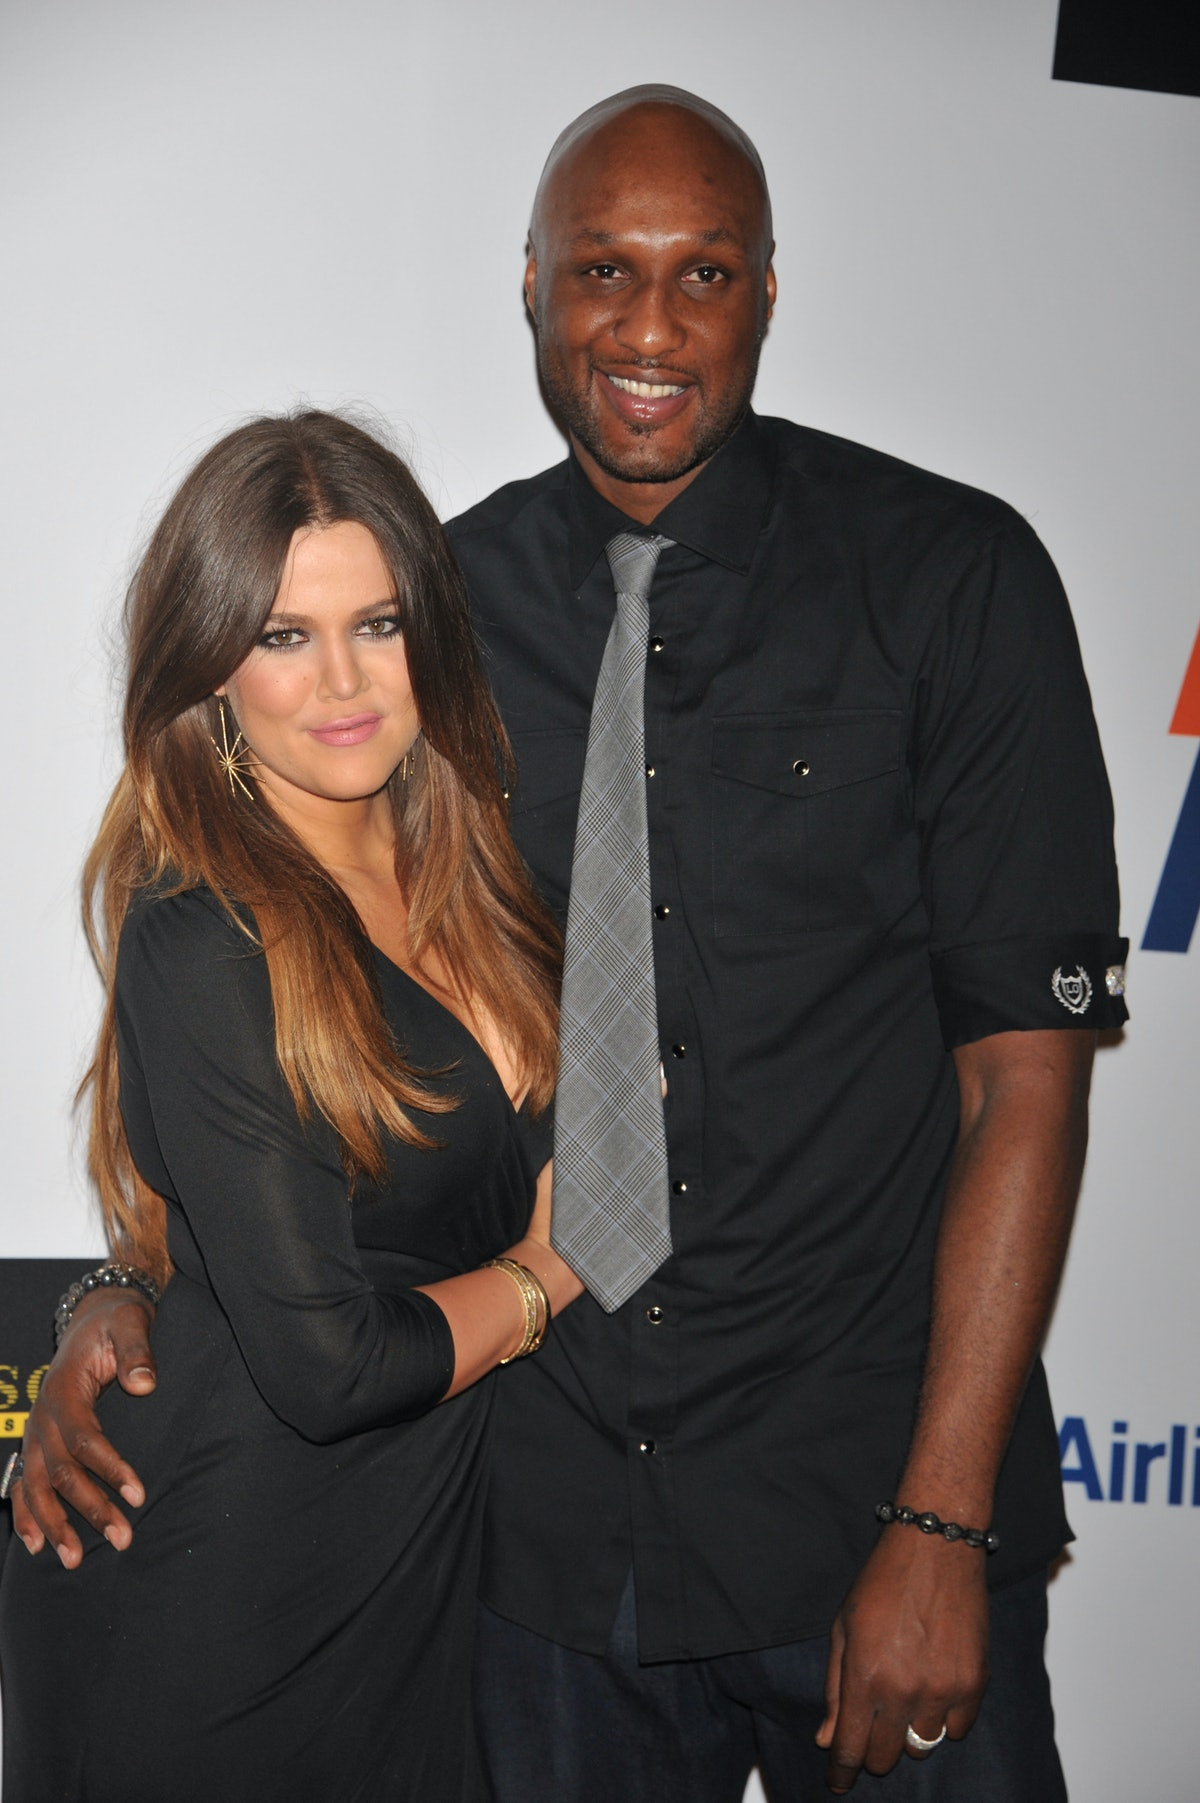 Lamar Odom just admitted he wants to get back with Khloé Kardashian in an interview.